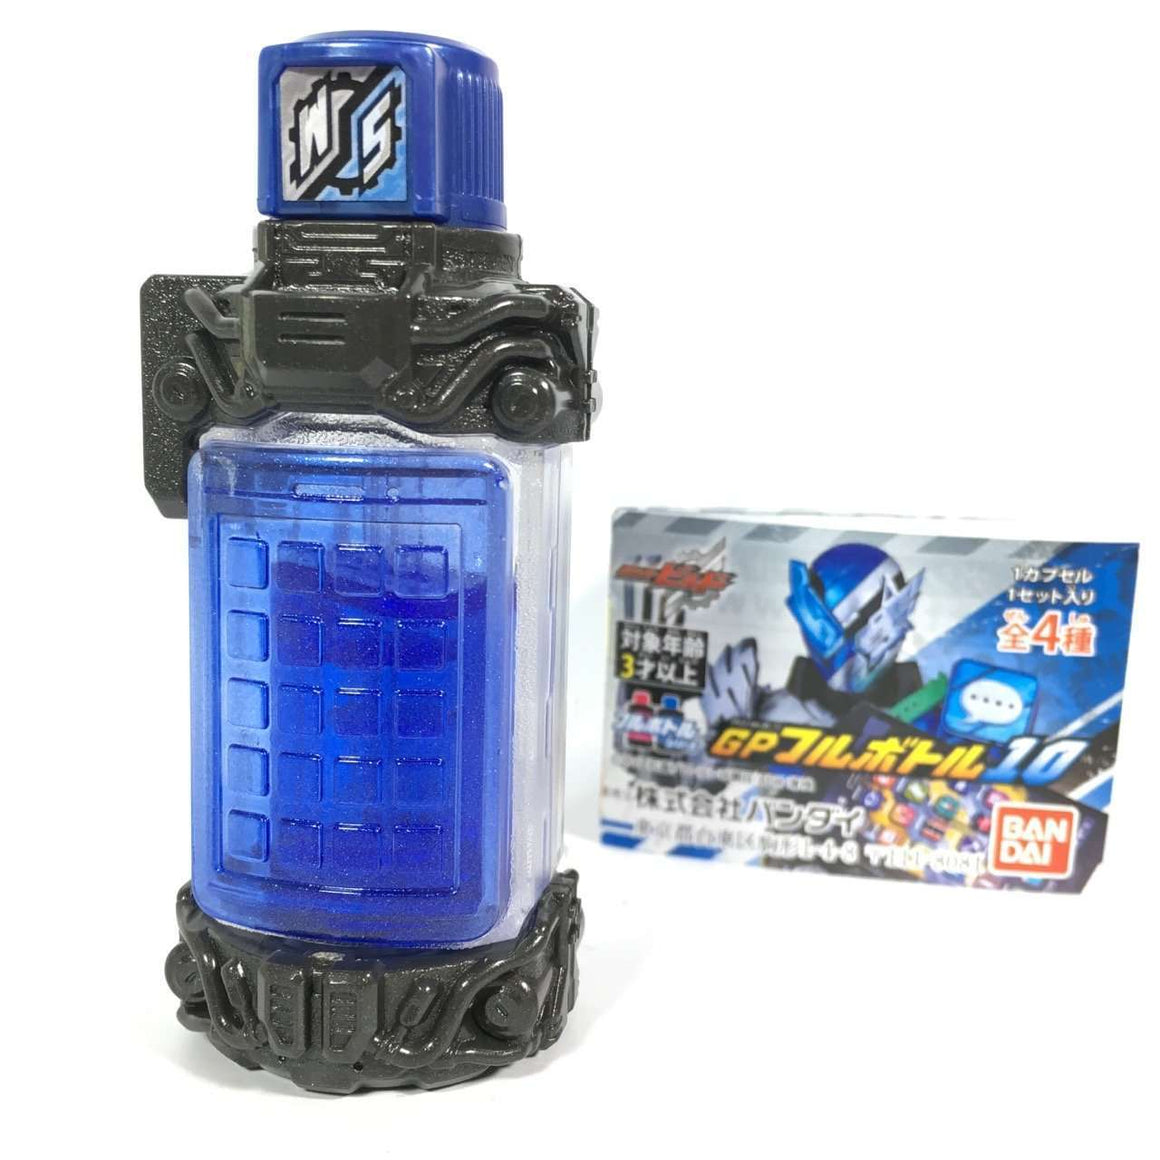 CSTOYS INTERNATIONAL:Kamen Rider Build: Capsule Toy GP Full Bottle 32 Smarpho Full Bottle